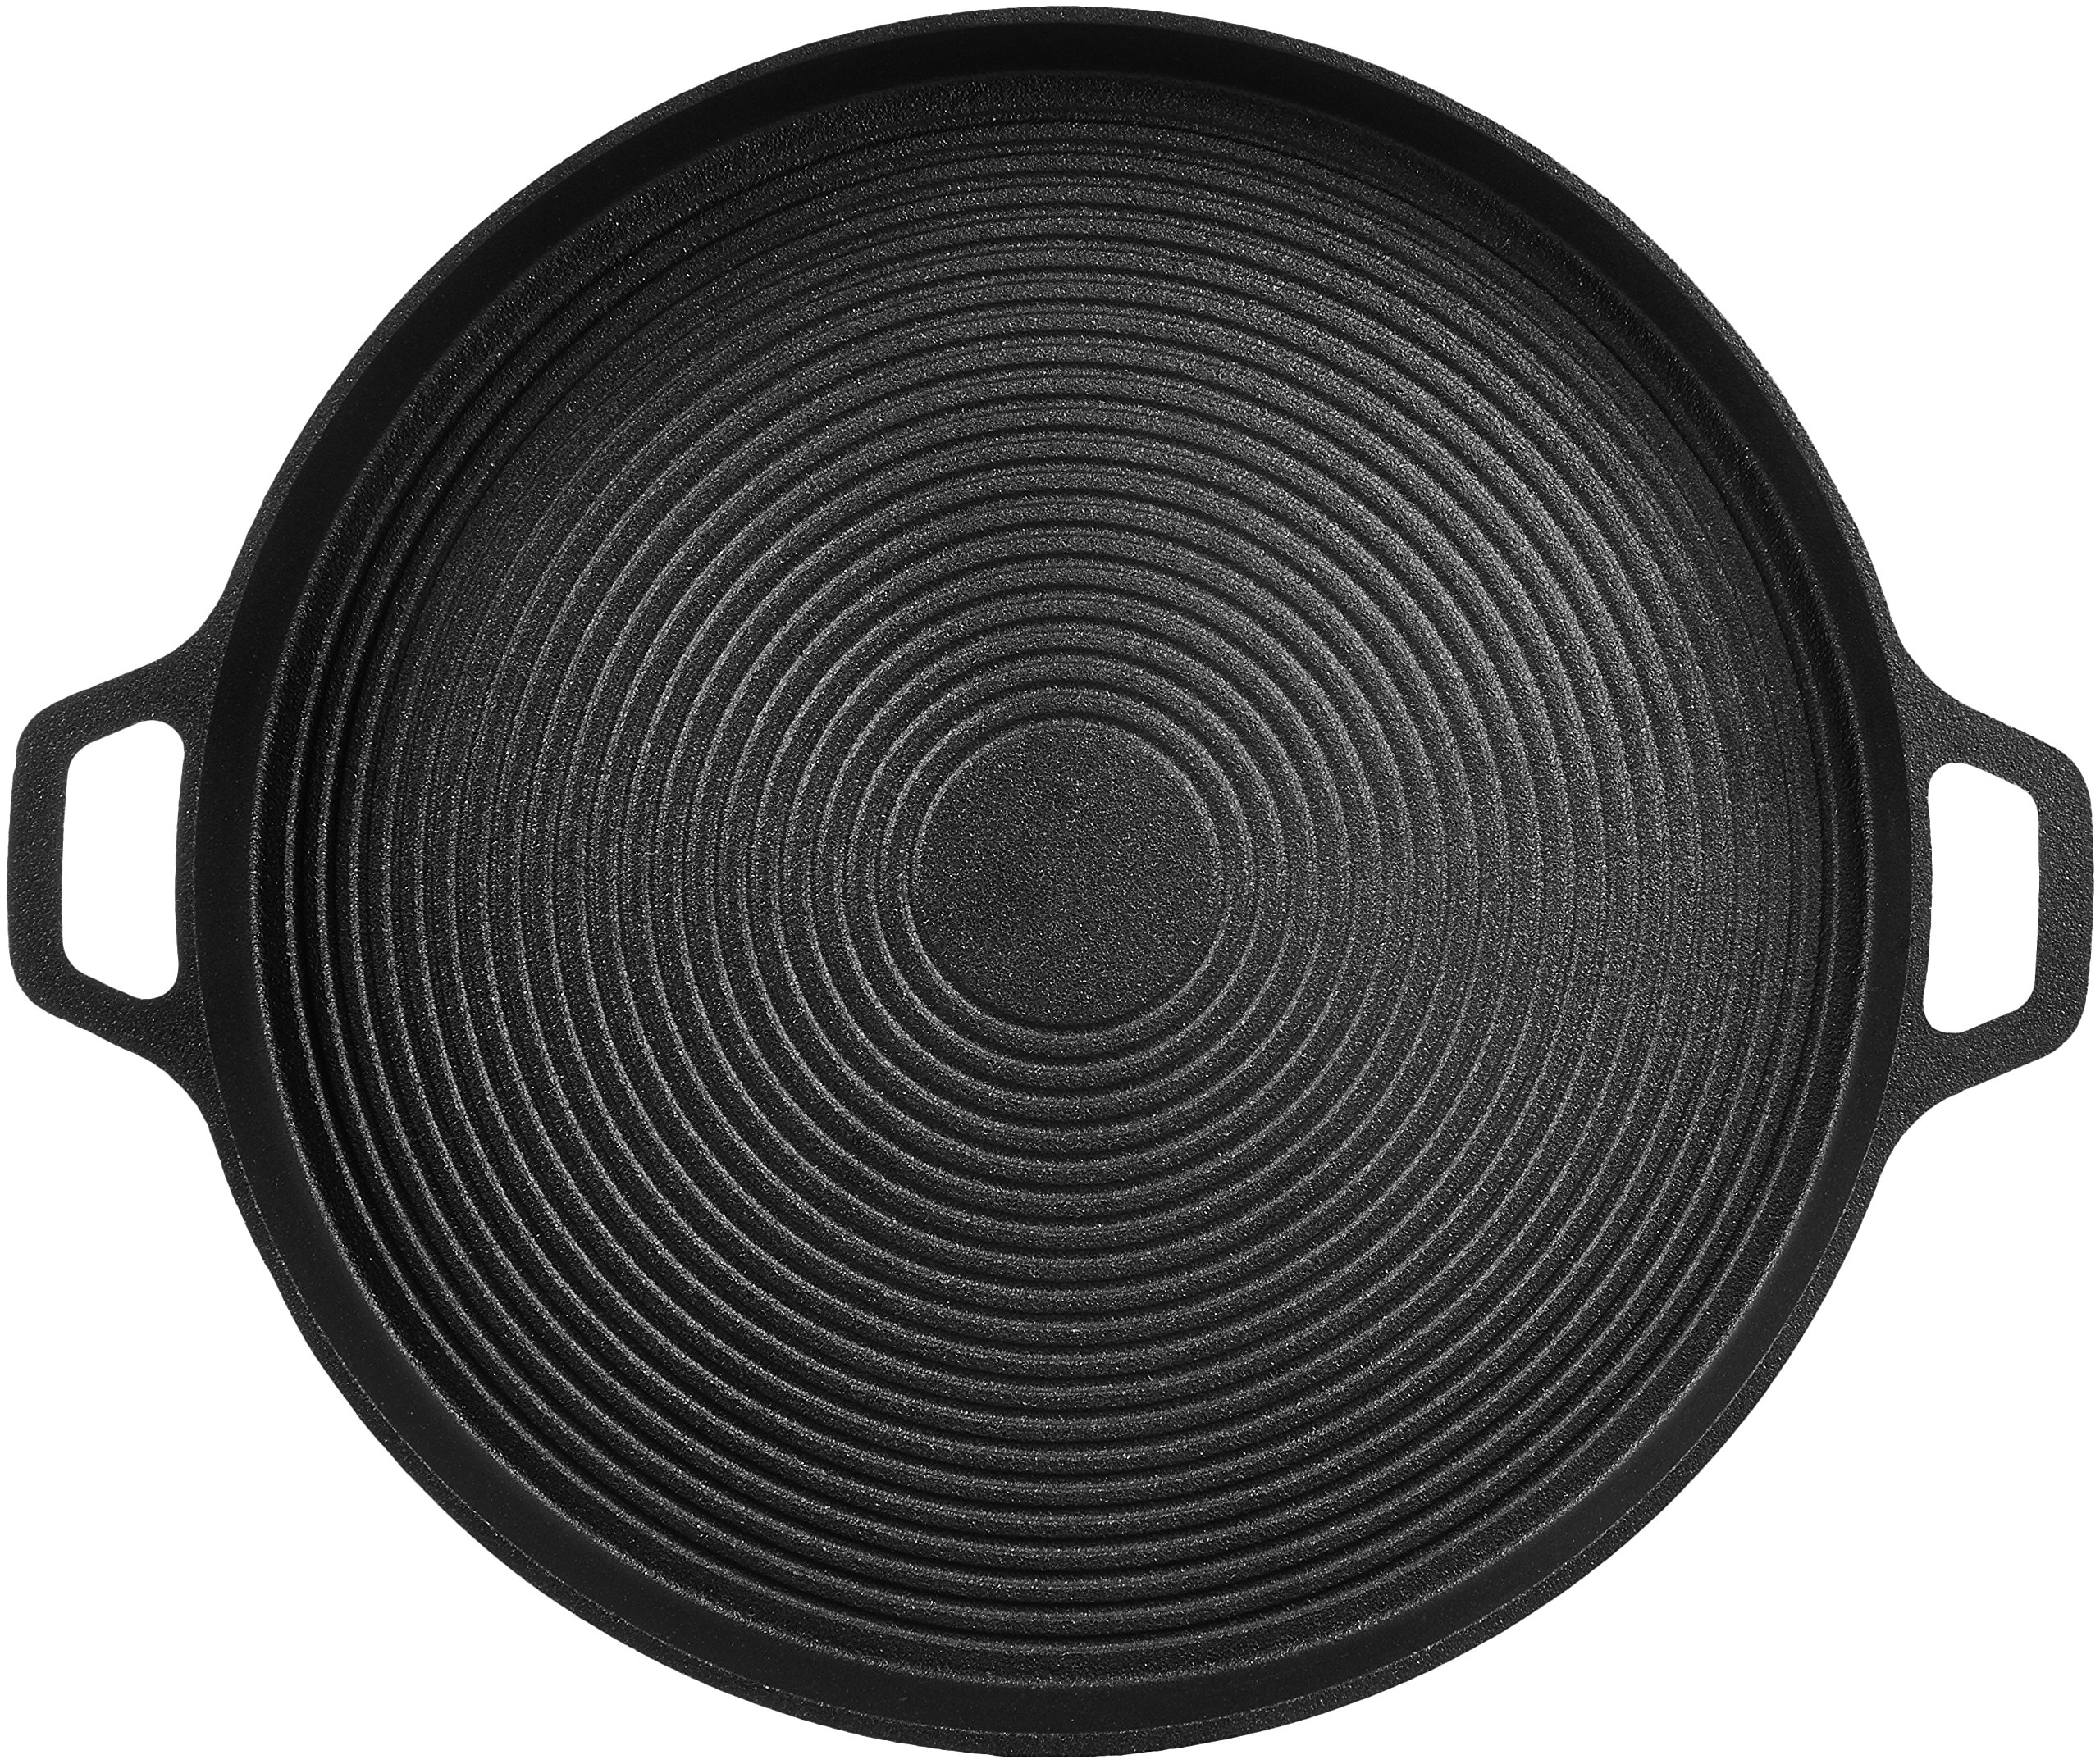 AmazonBasics Pre-Seasoned Cast Iron Pizza Pan, 13.5 Inch 6 13.5-inch pre-seasoned cast-iron pizza pan for baking pizza to delicious perfection Heavy-duty cast-iron construction provides optimal heat retention and thorough, even heating 2 loop side handles for a steady, secure hold when lifting or carrying